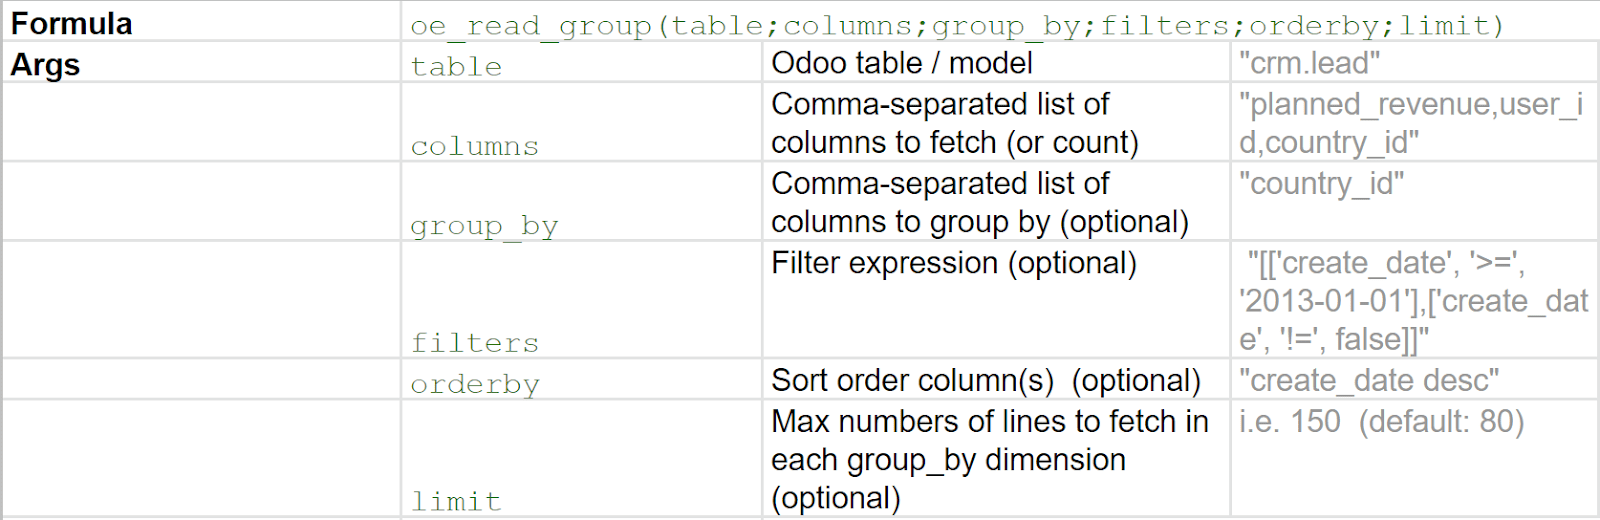 Table with examples of grouped sum arguments to use in Odoo